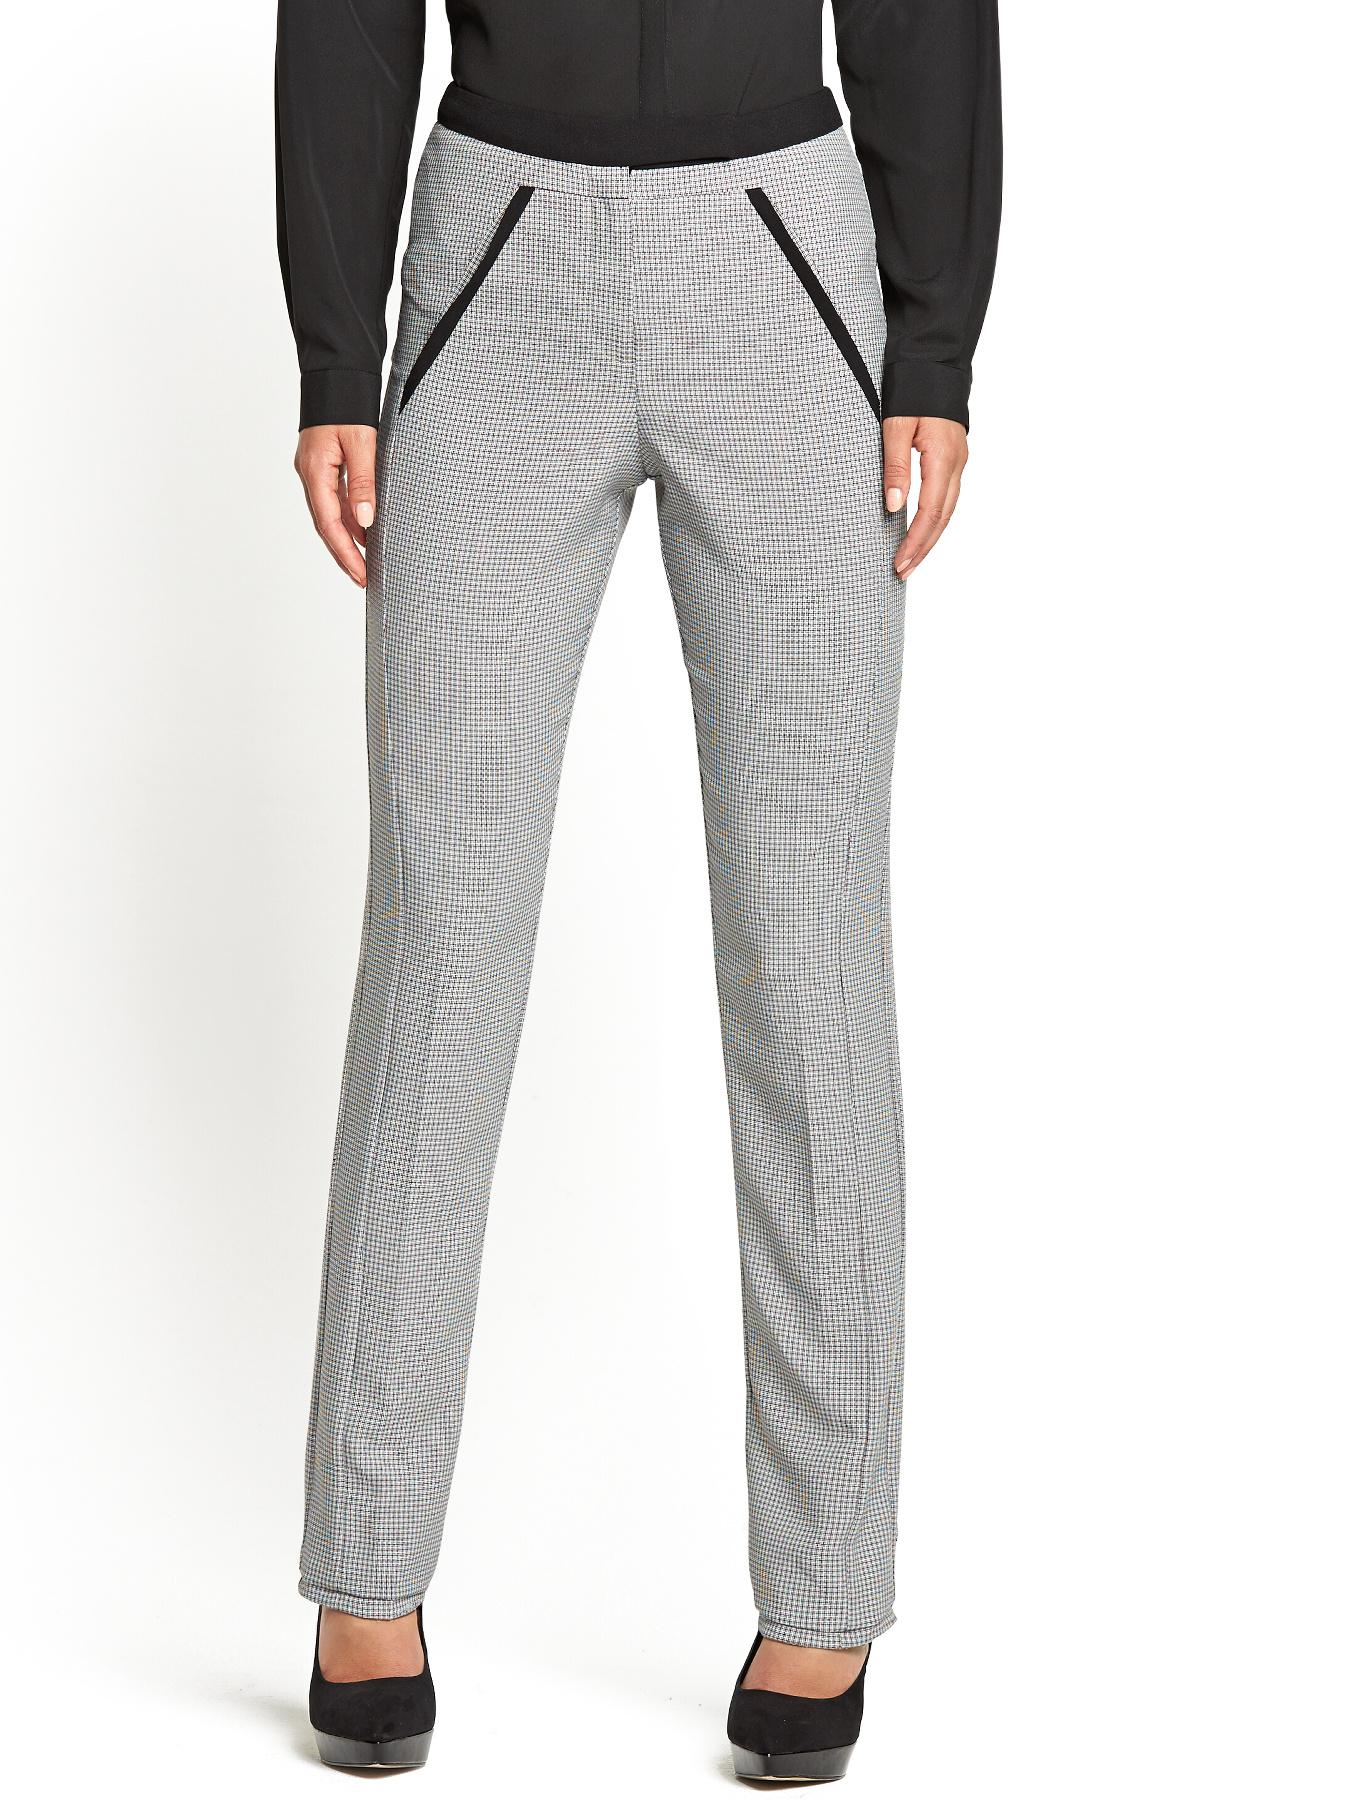 Textured Skinny Trousers, Grey,Black